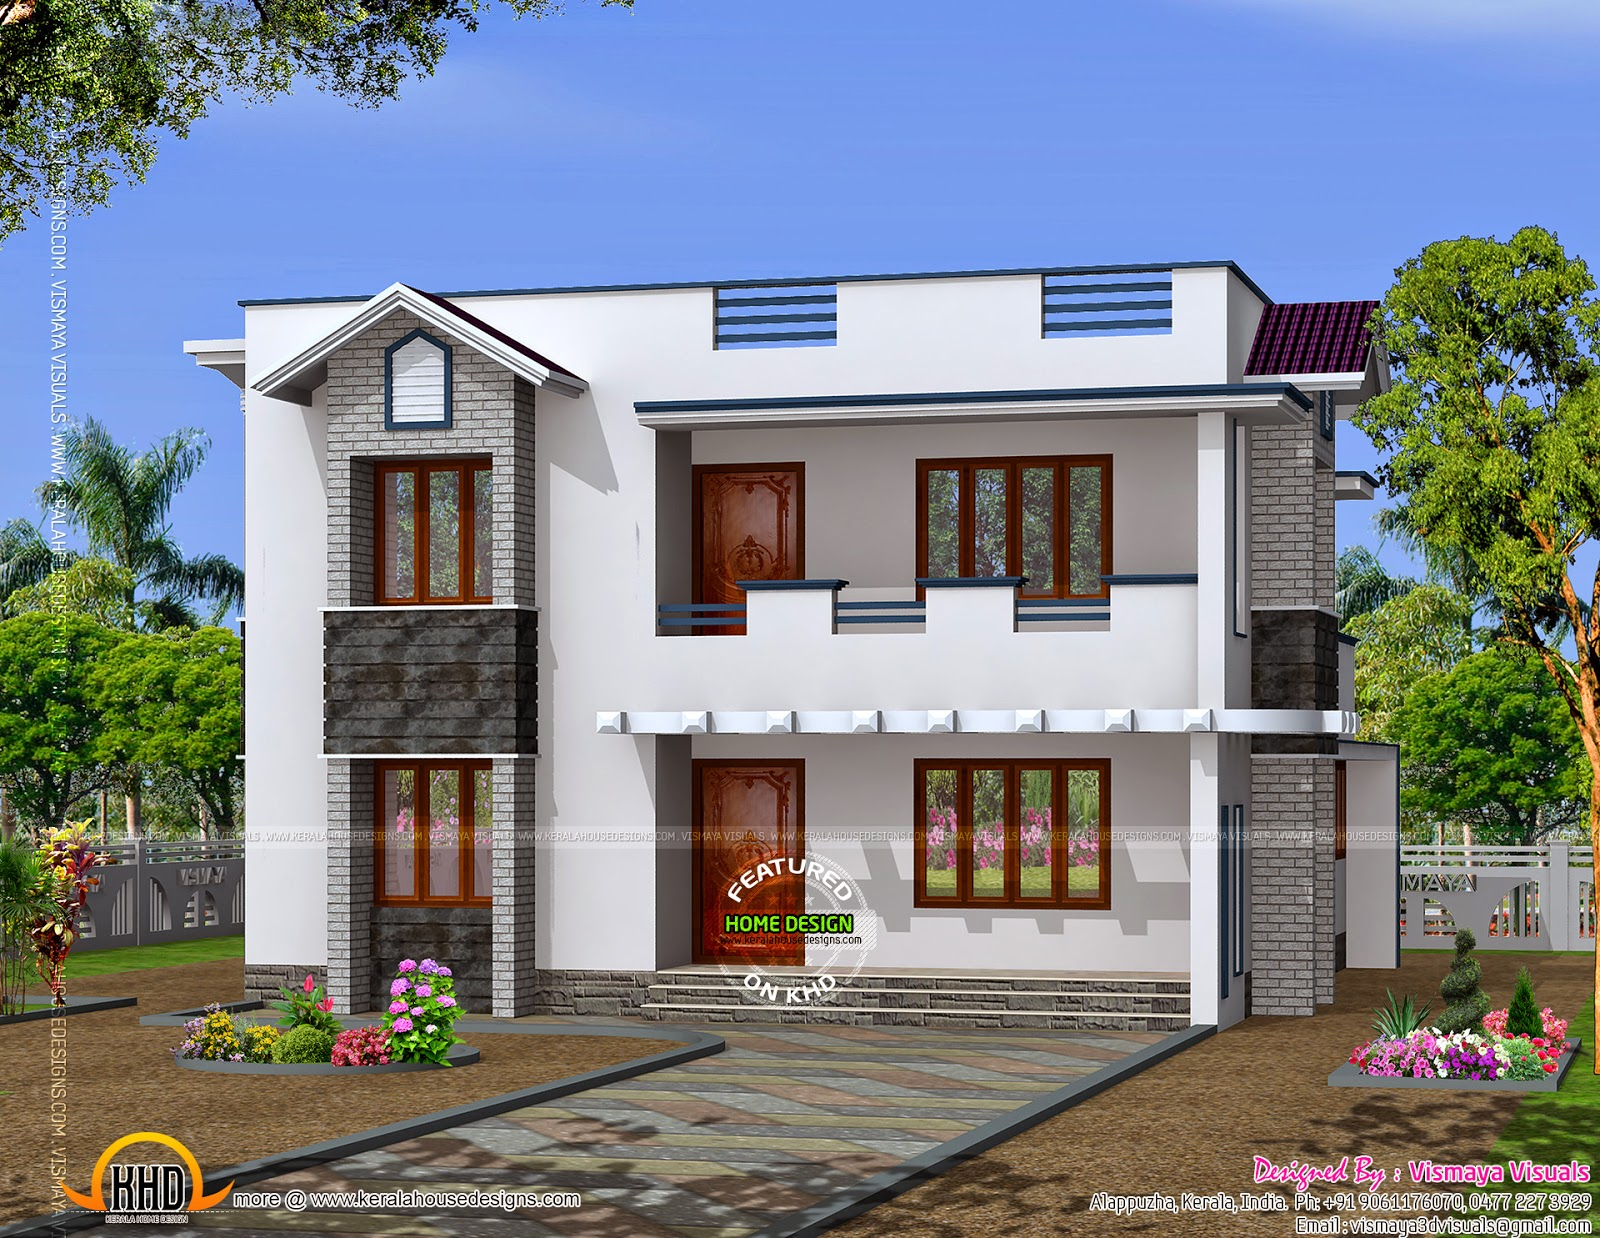 Simple design home kerala home design and floor plans for Simple home plans to build